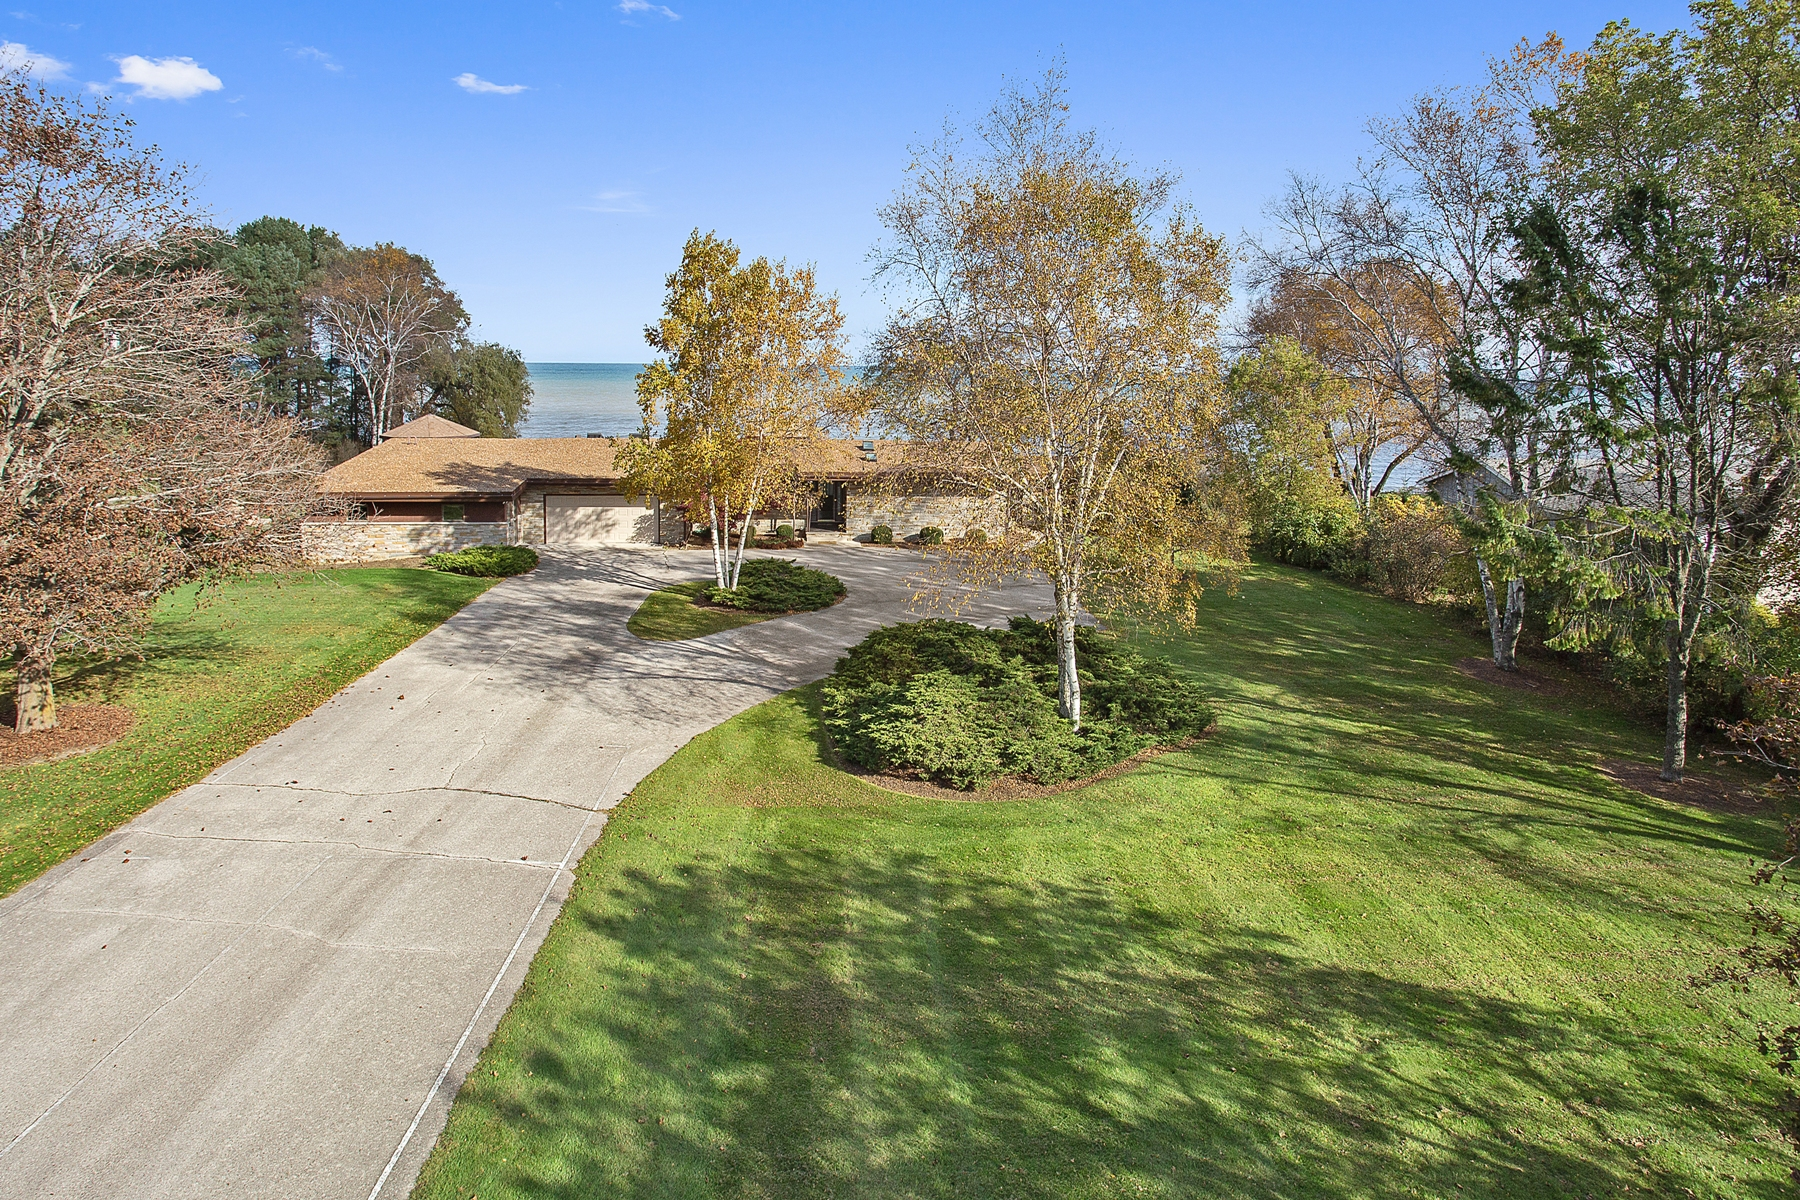 Single Family Home for Sale at Lake Michigan Sand Beach 1411 Lakeshore Drive Cleveland, Wisconsin 53015 United States